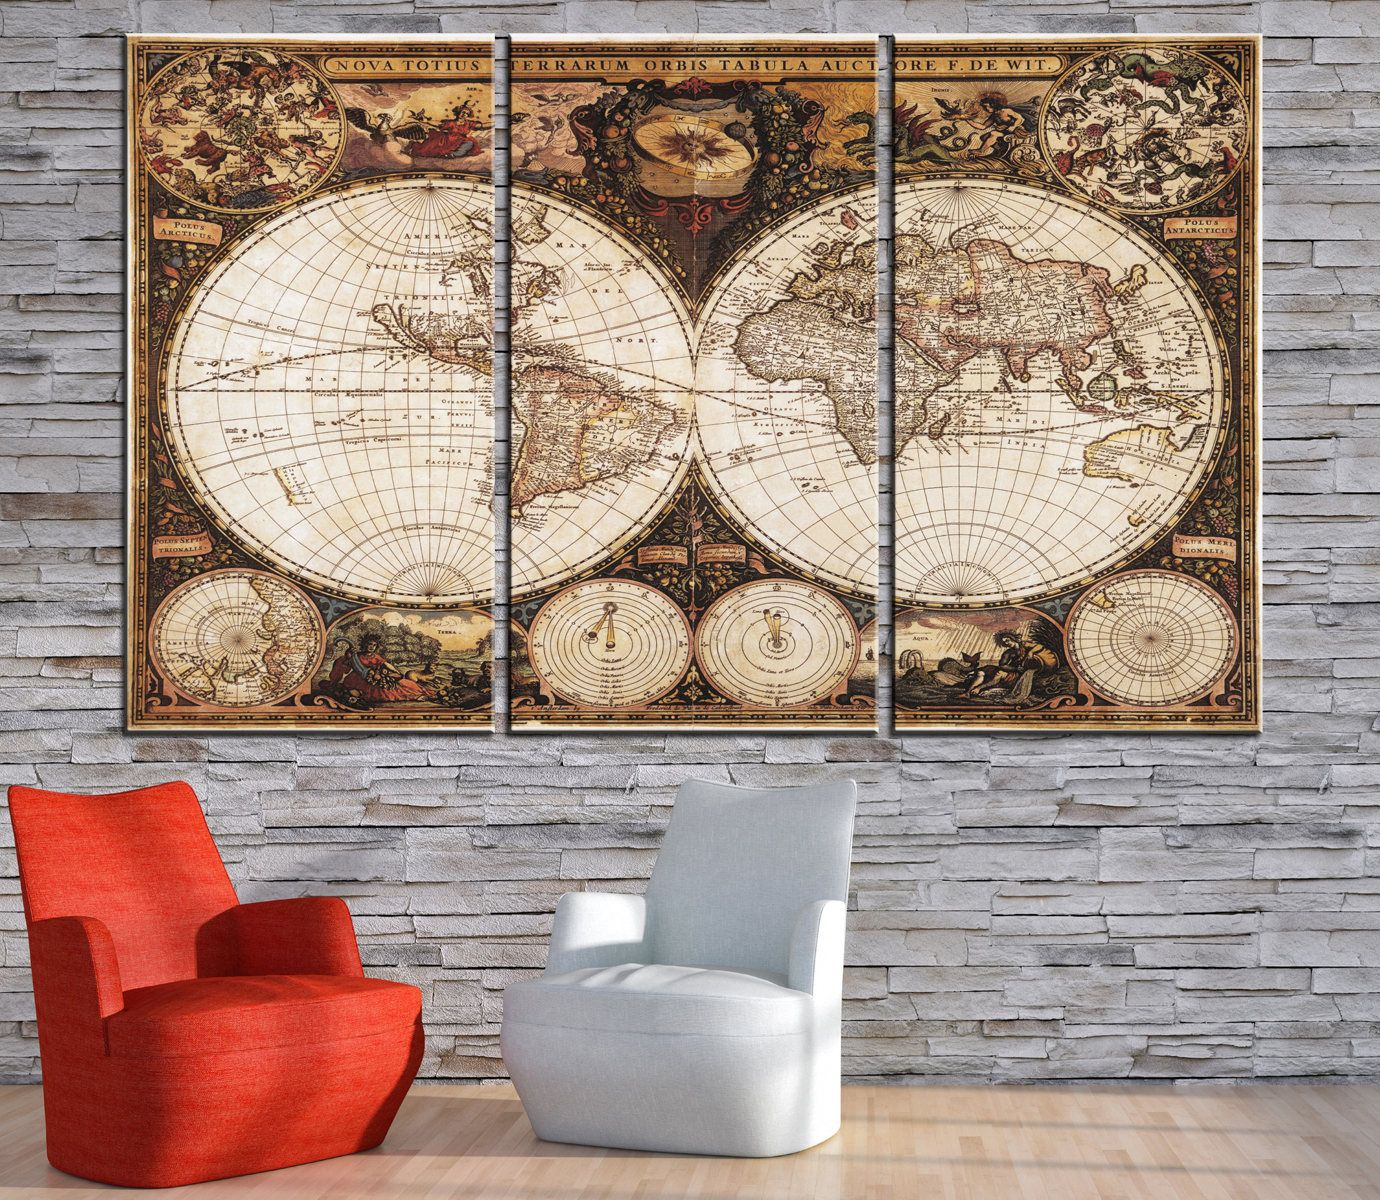 Double hemisphere world map canvas panels setancient world map double hemisphere world map canvas panels setancient world map printold world map wall art for home office decor gumiabroncs Image collections